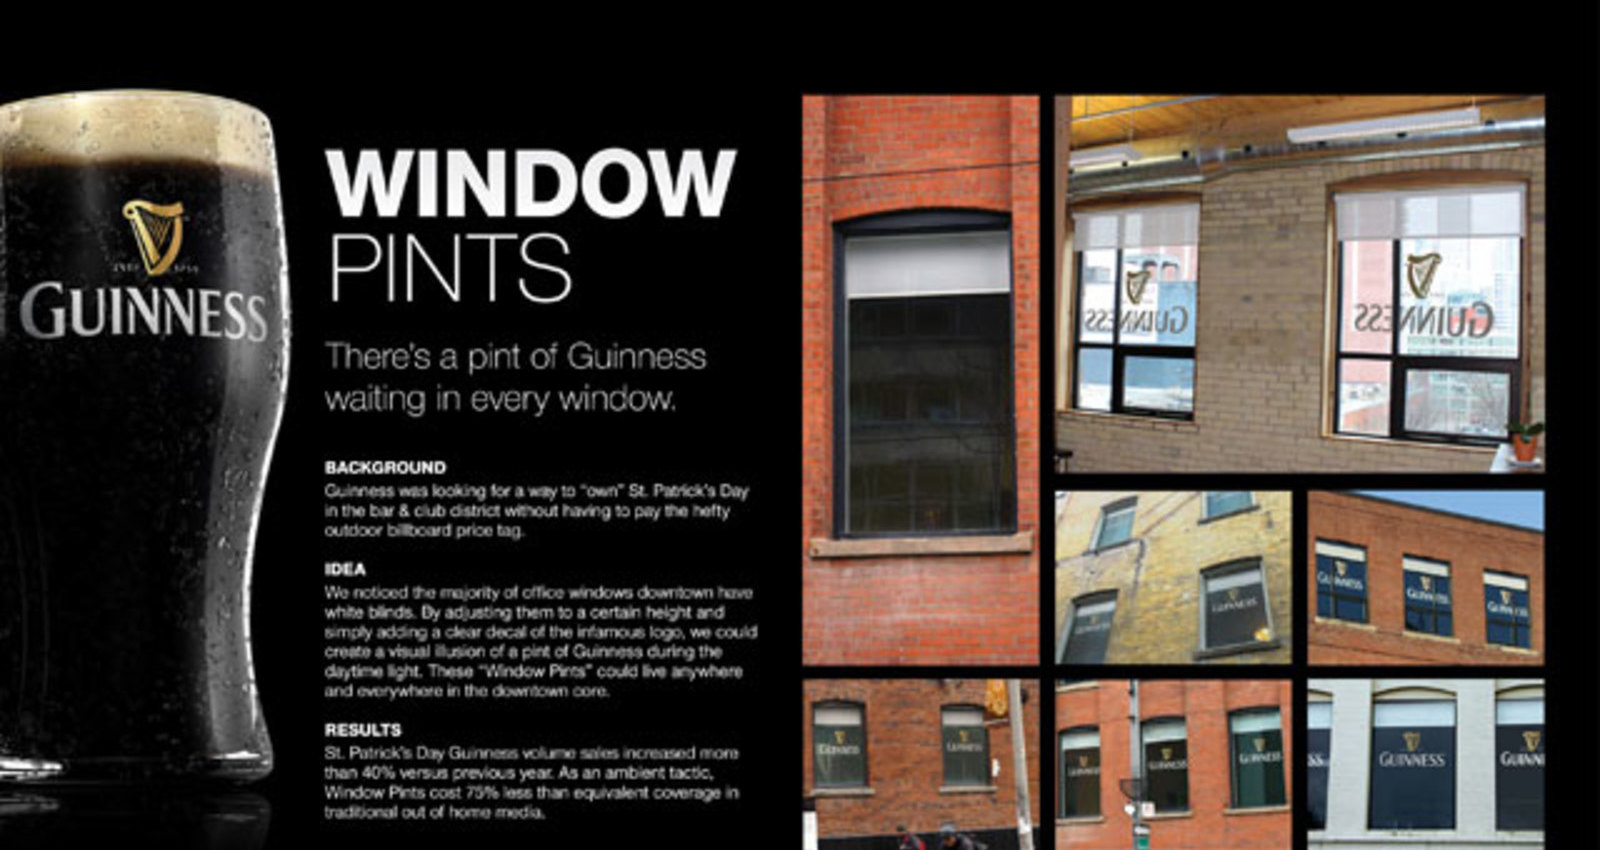 Window Pints